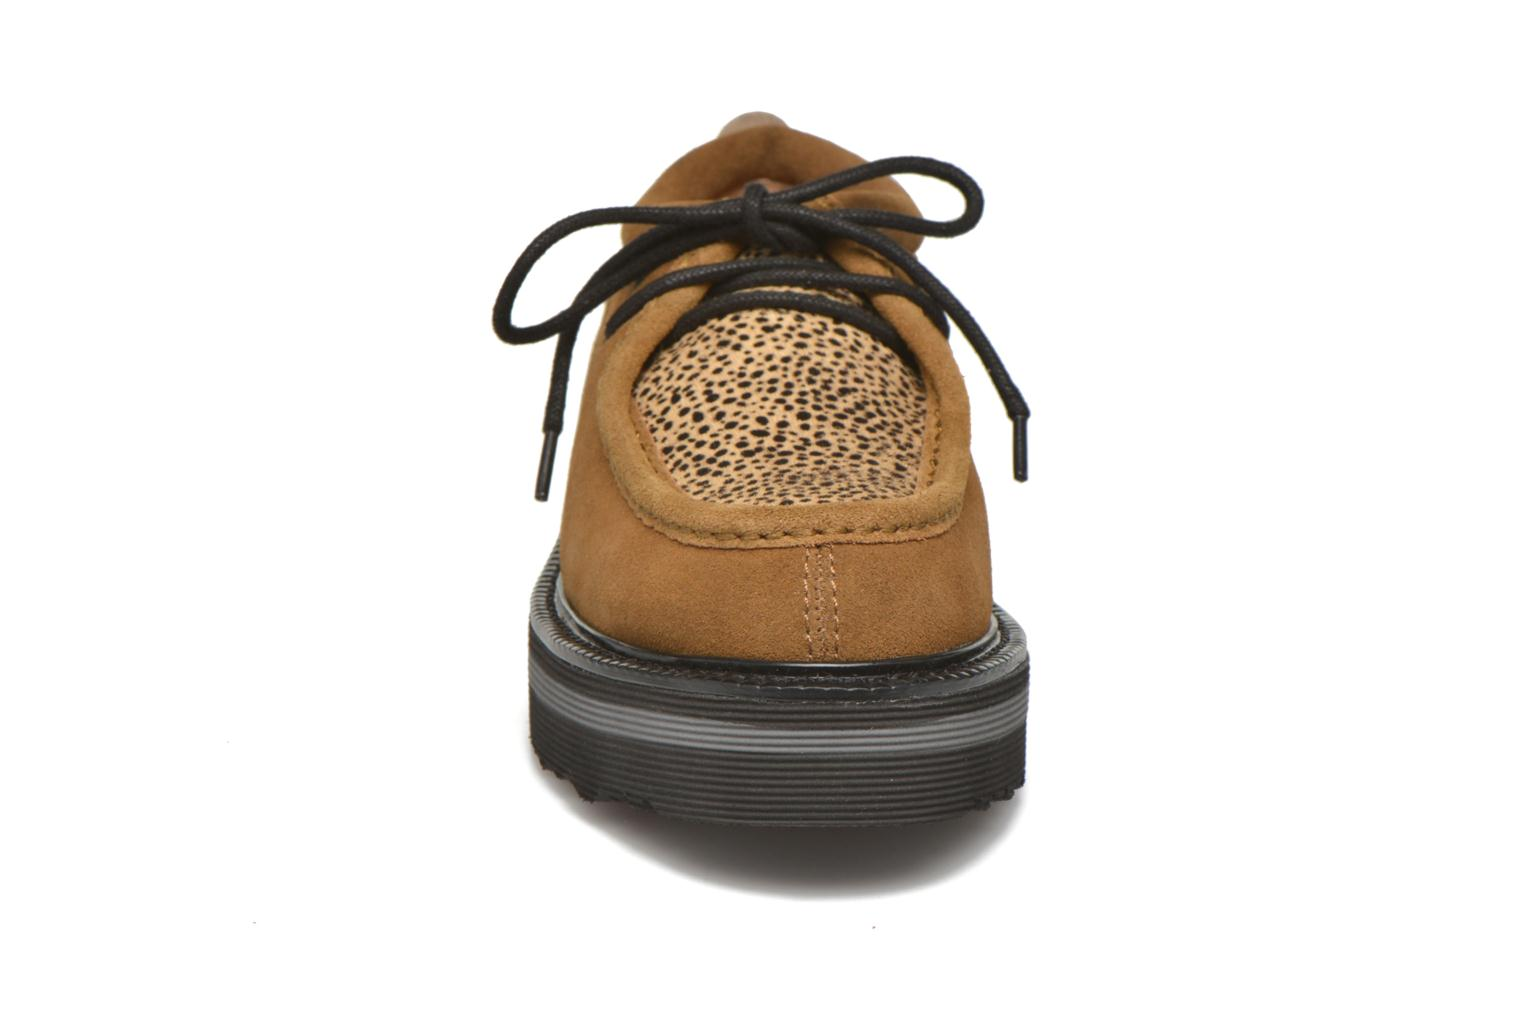 Blow Mike Suede / Pony Linx Camel / Natural